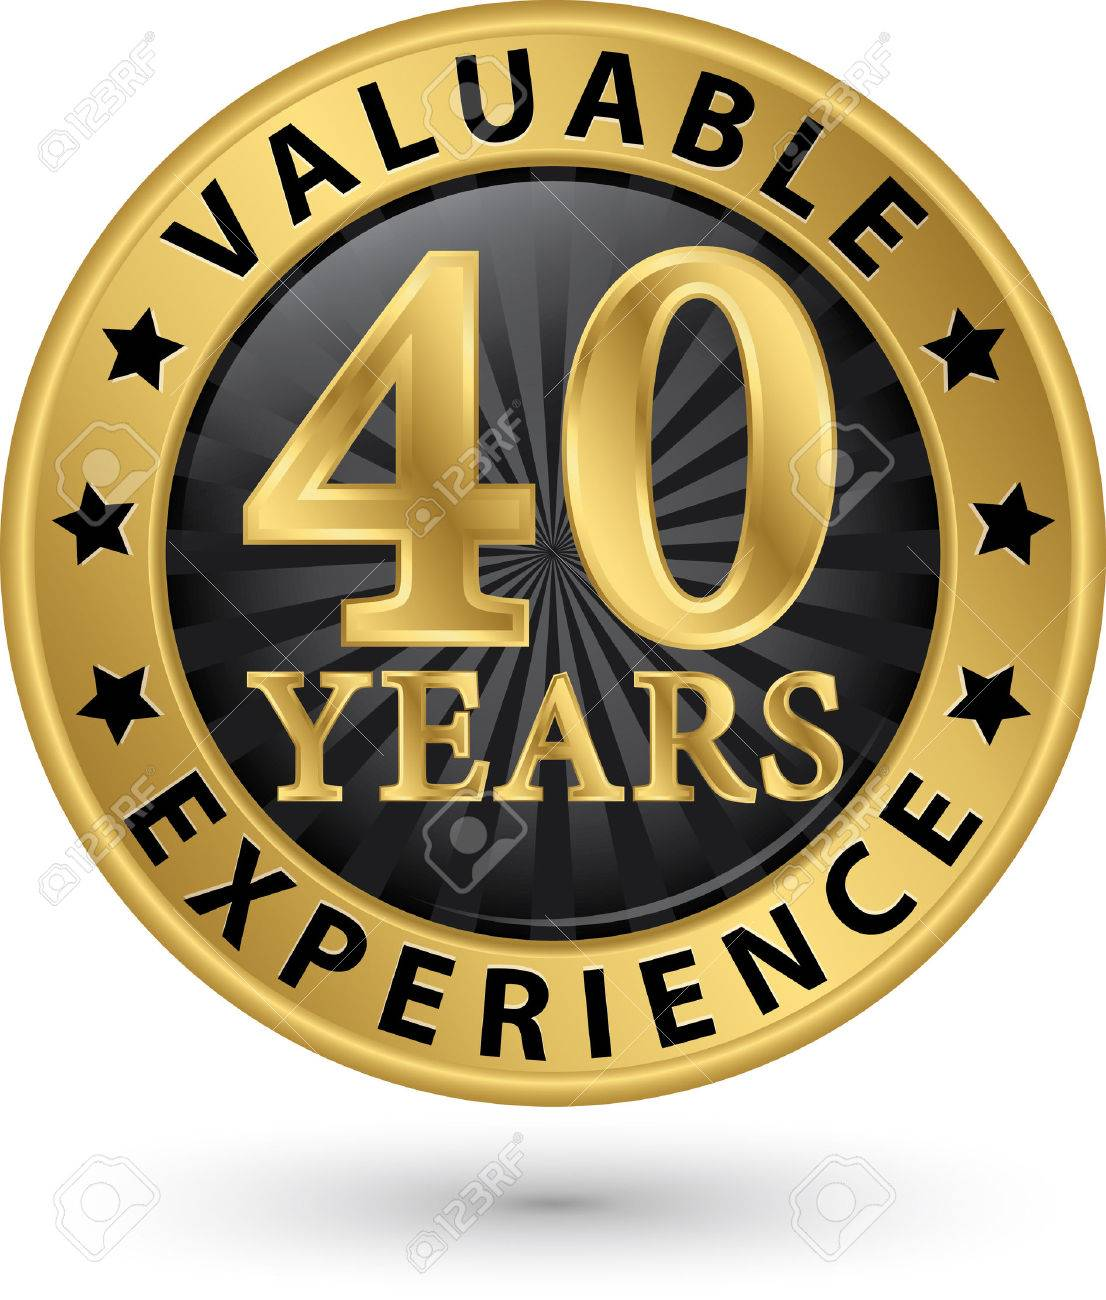 years valuable experience gold label vector illustration 40 years valuable experience gold label vector illustration stock vector 33009675